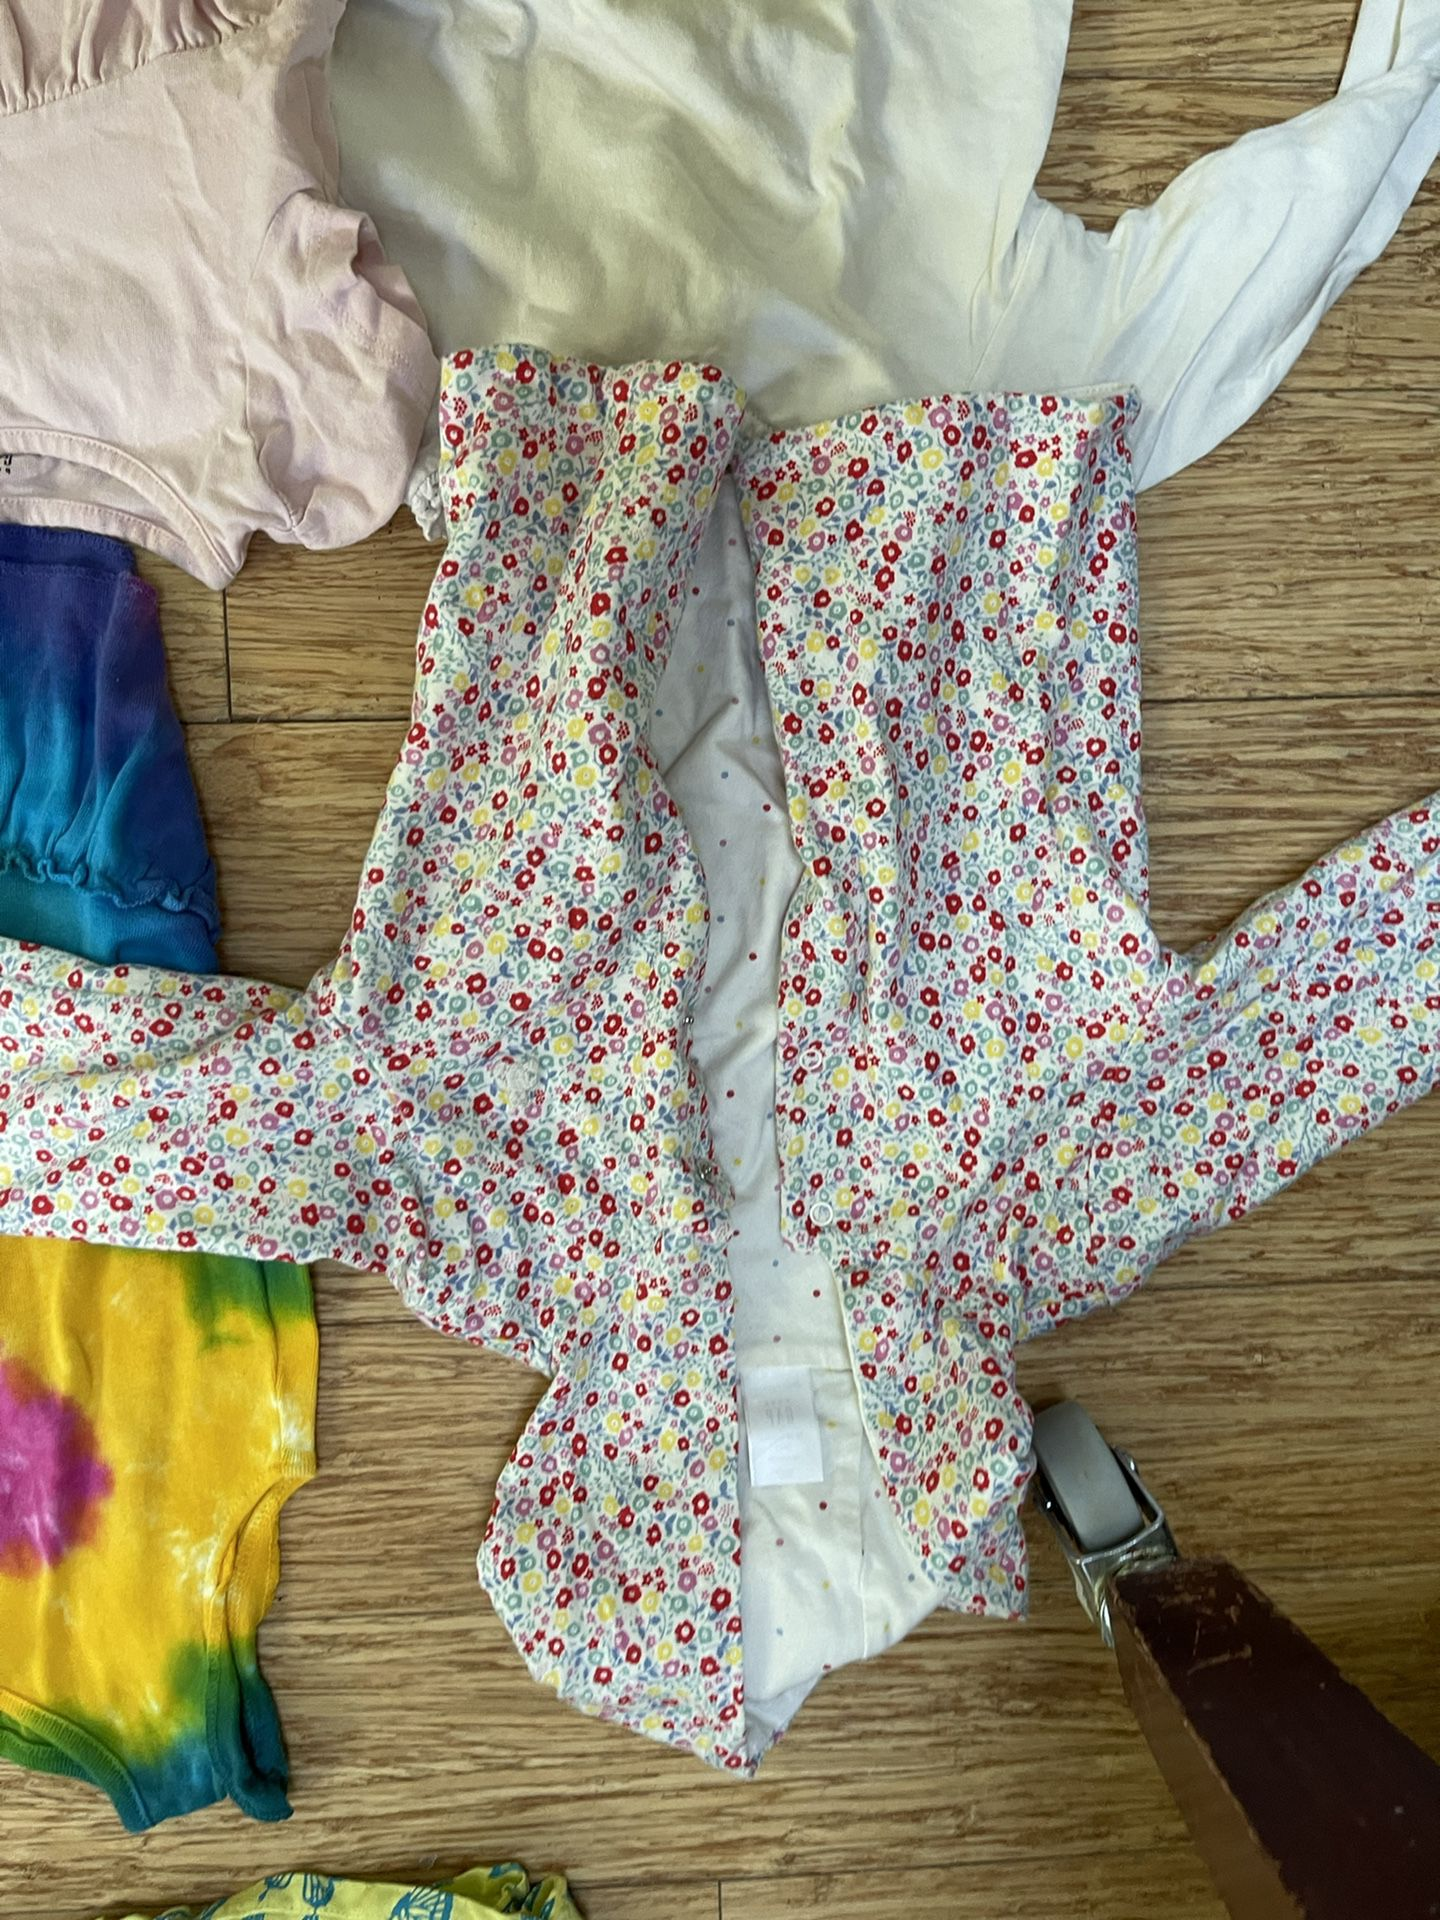 LOT Of Baby Girl Clothes Size 18mo-3t Over 30 Pieces Boutique Clothes